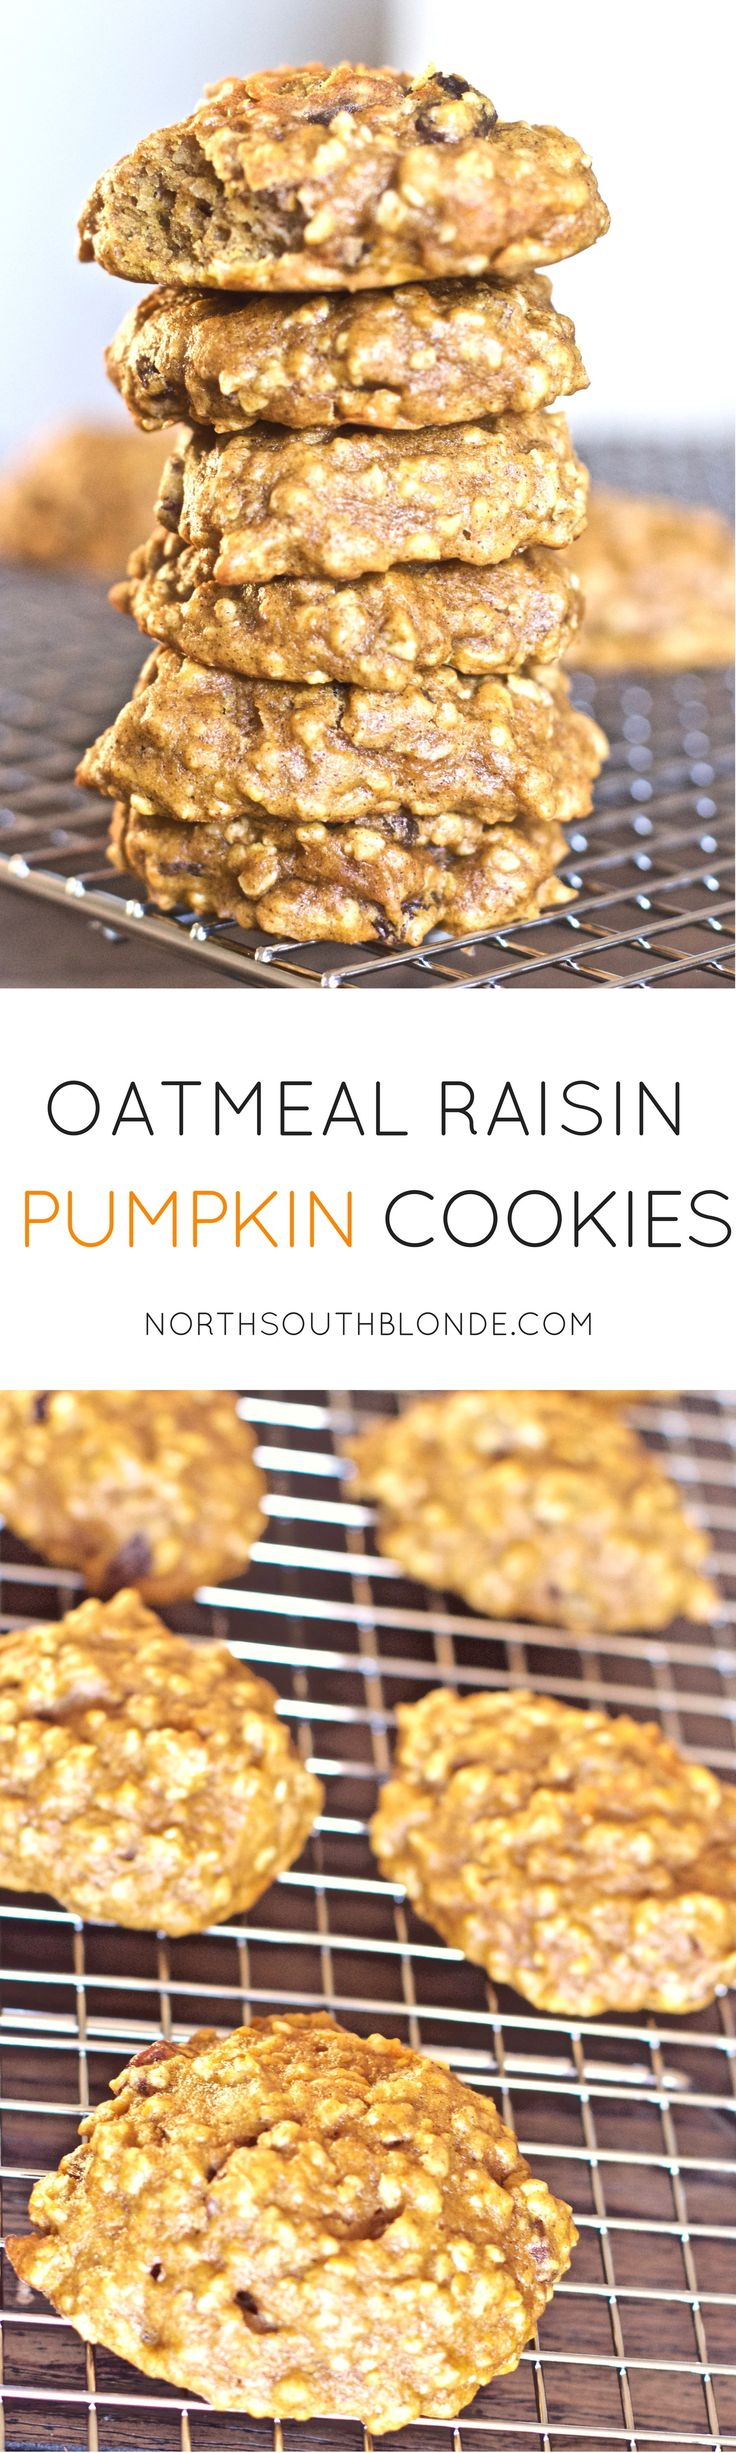 Toddler friendly cookies that are high in fibre and nutritious enough for a healthy breakfast or snack. Toddler food for picky eaters, babies, & toddler alike. A pumpkin spice, fall recipe before Christmas! a Familiy/food/home blog